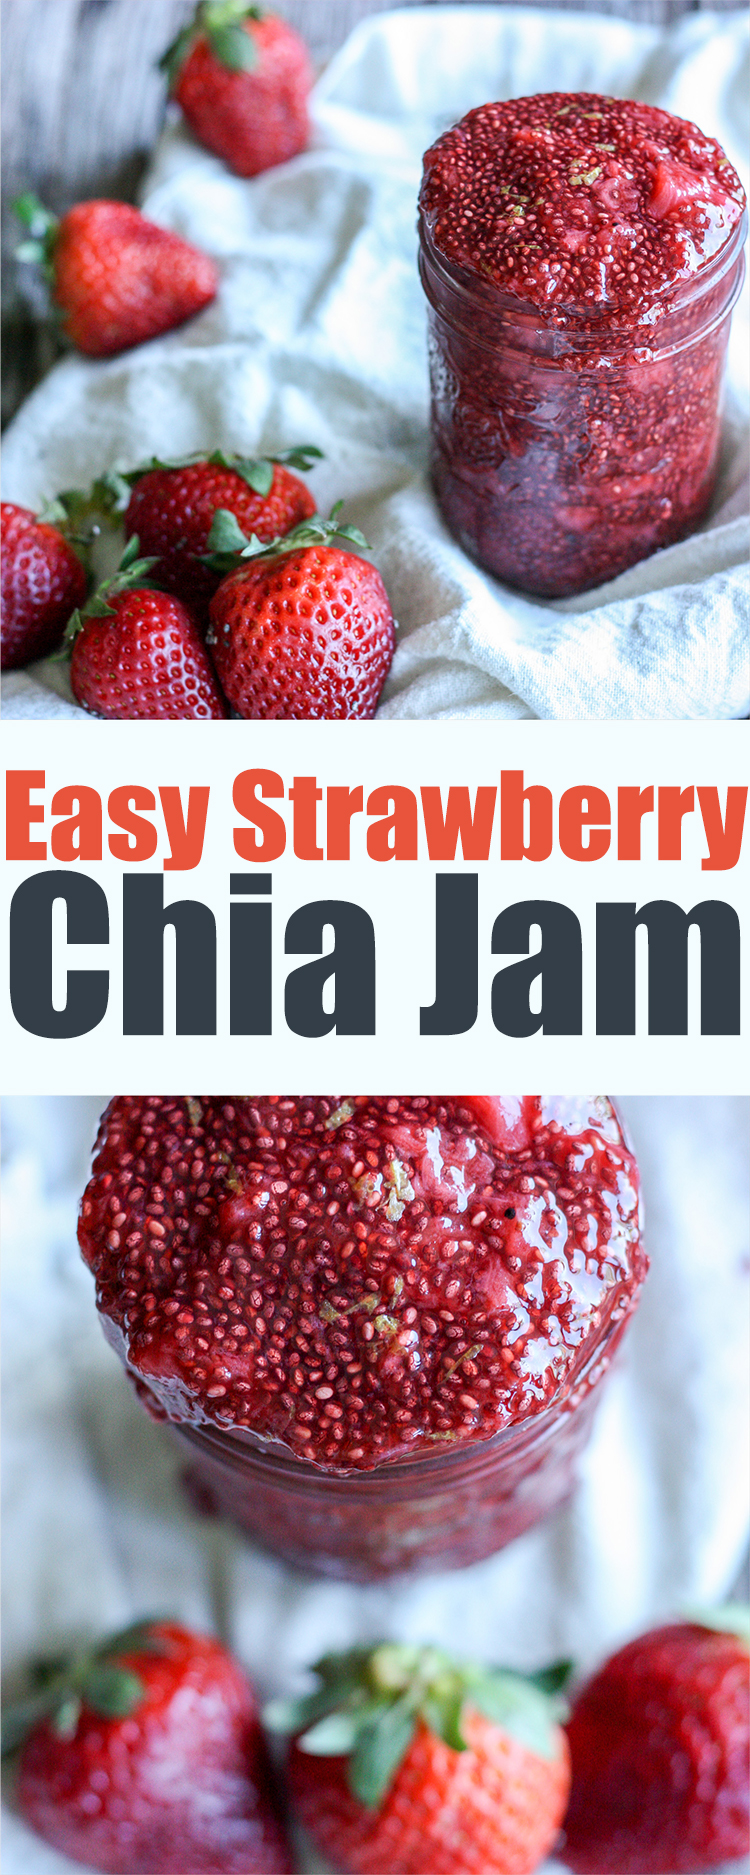 Easiest strawberry chia jam ever!